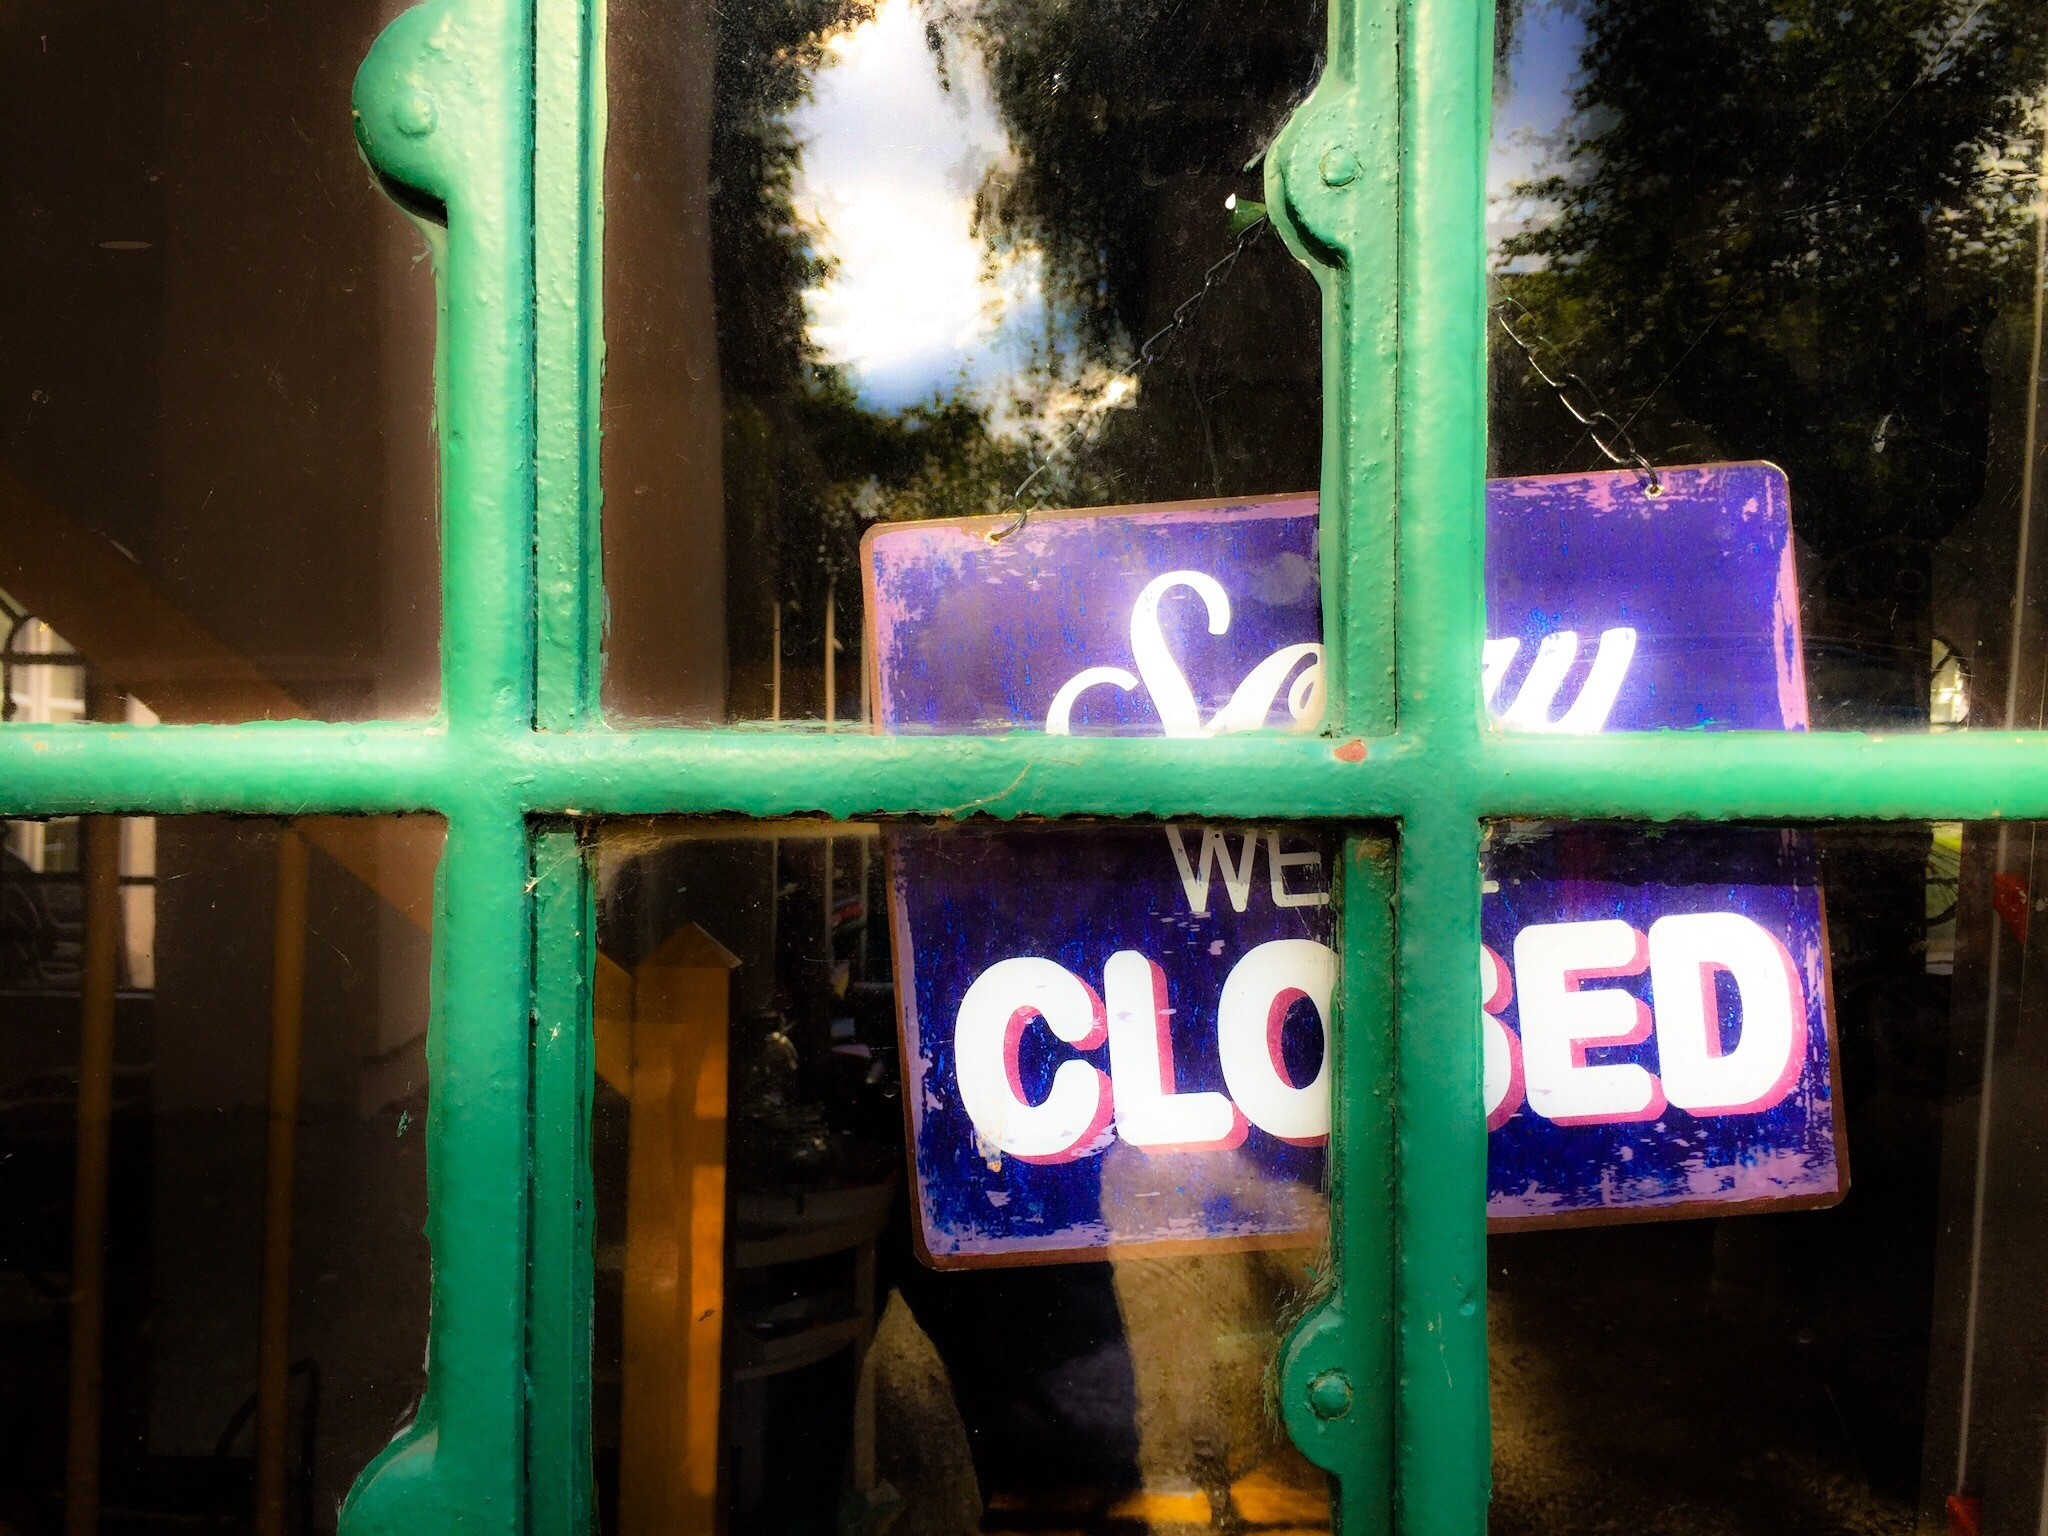 Sorry we are closed by Harry Schäfer